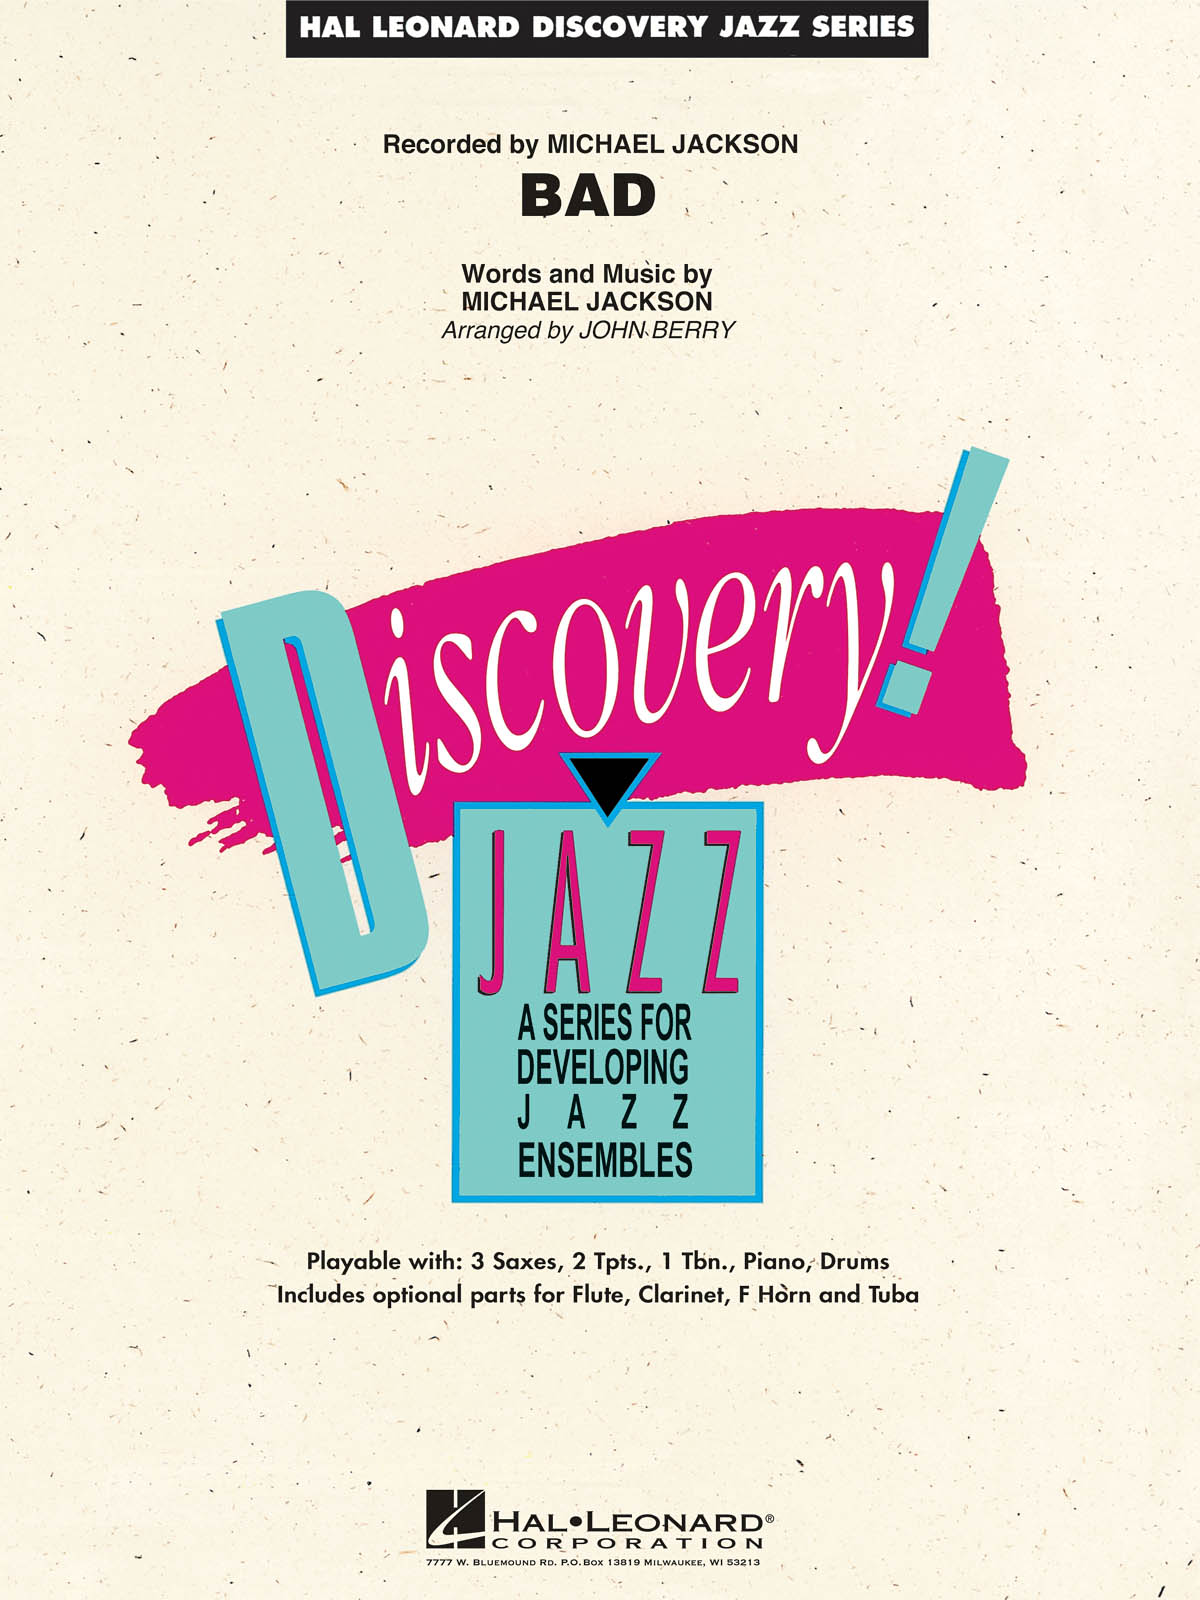 Bad: Discovery Jazz